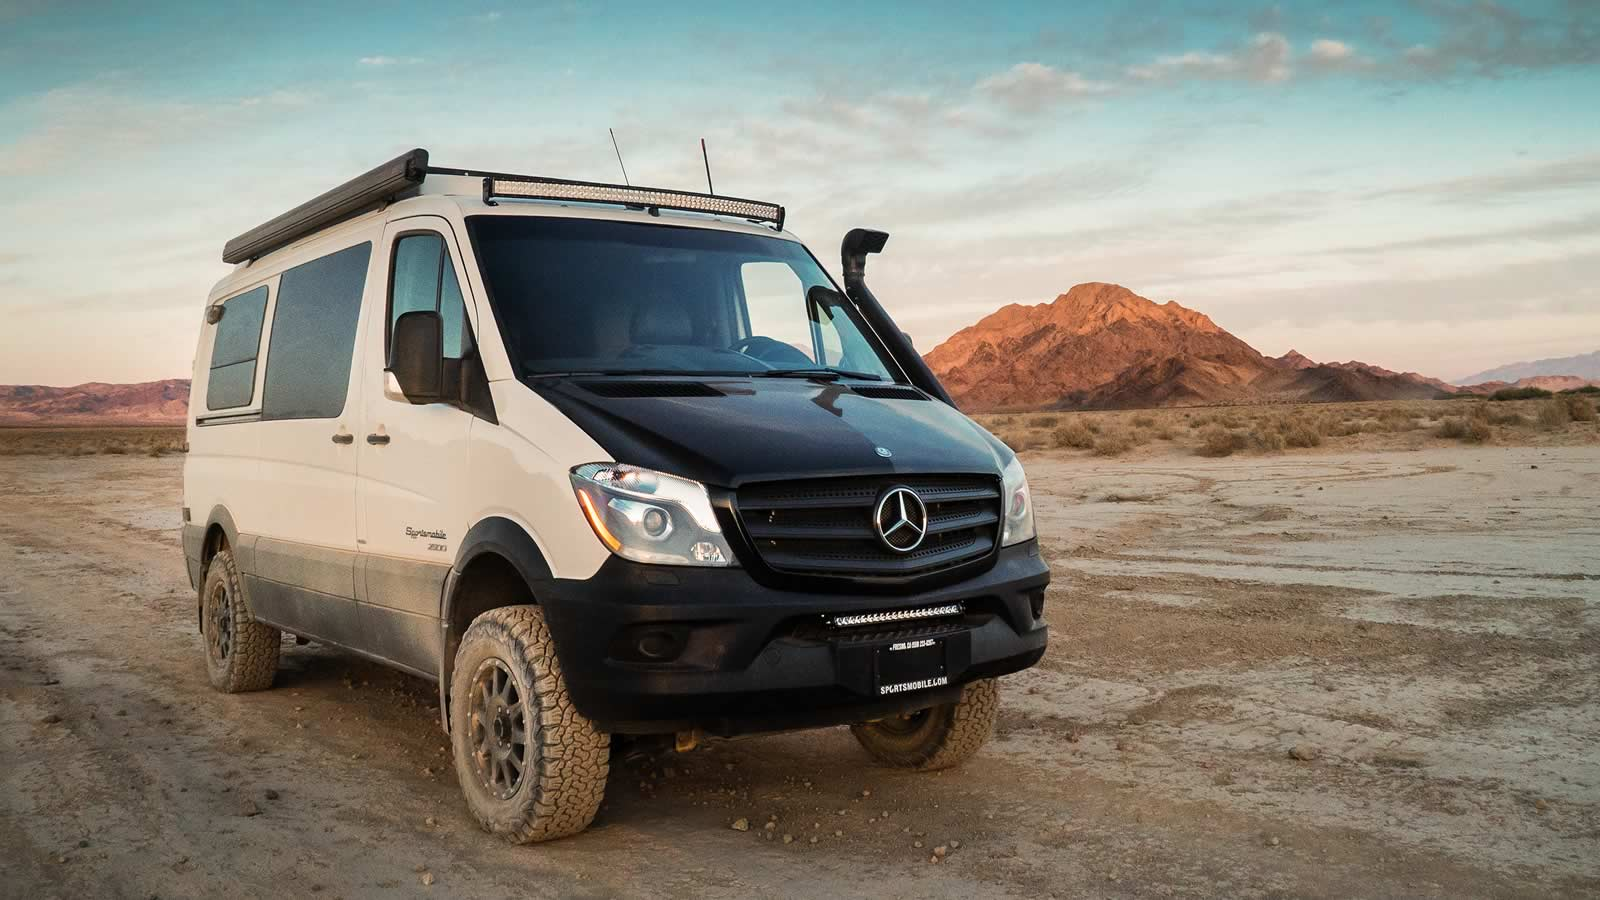 Mercedes Rv Van >> One Of Sportsmobile S Most Popular Product Lines Mercedes